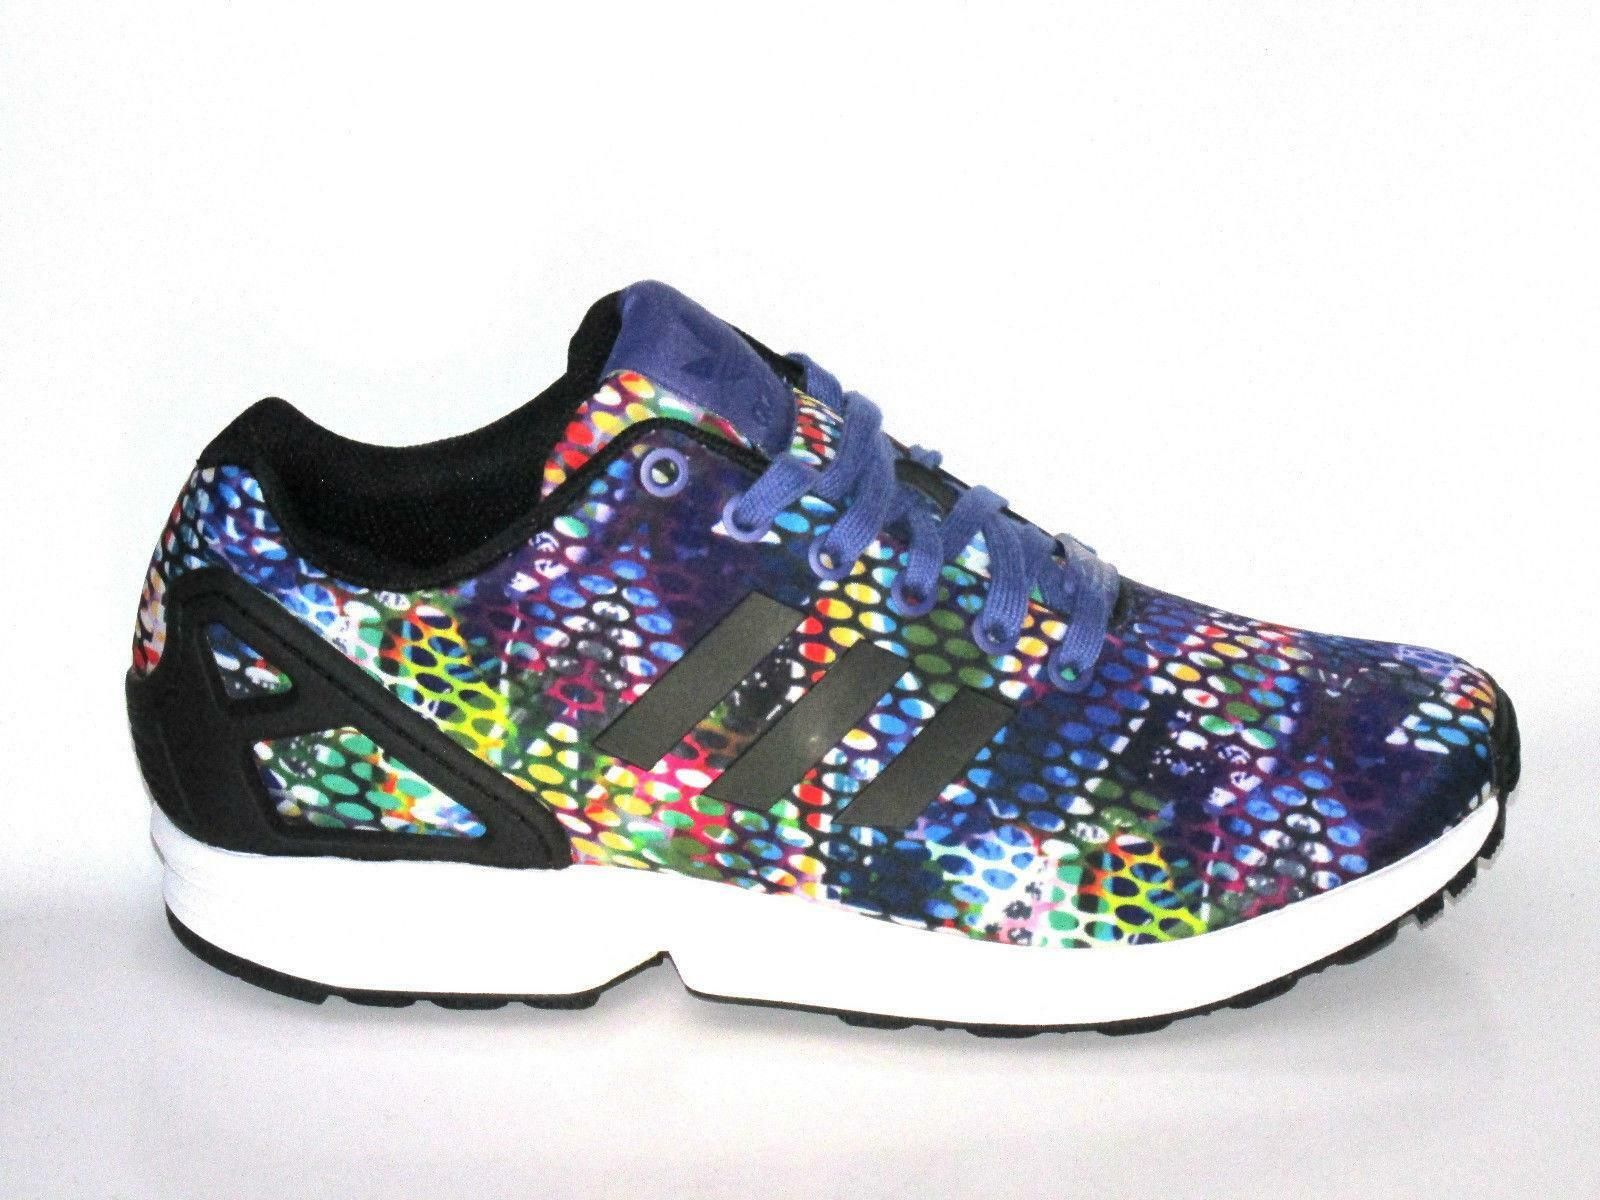 Wo Hommes ADIDAS ZX FLUX S77433 Violet Snake Casual Trainers S77433 FLUX 47086a